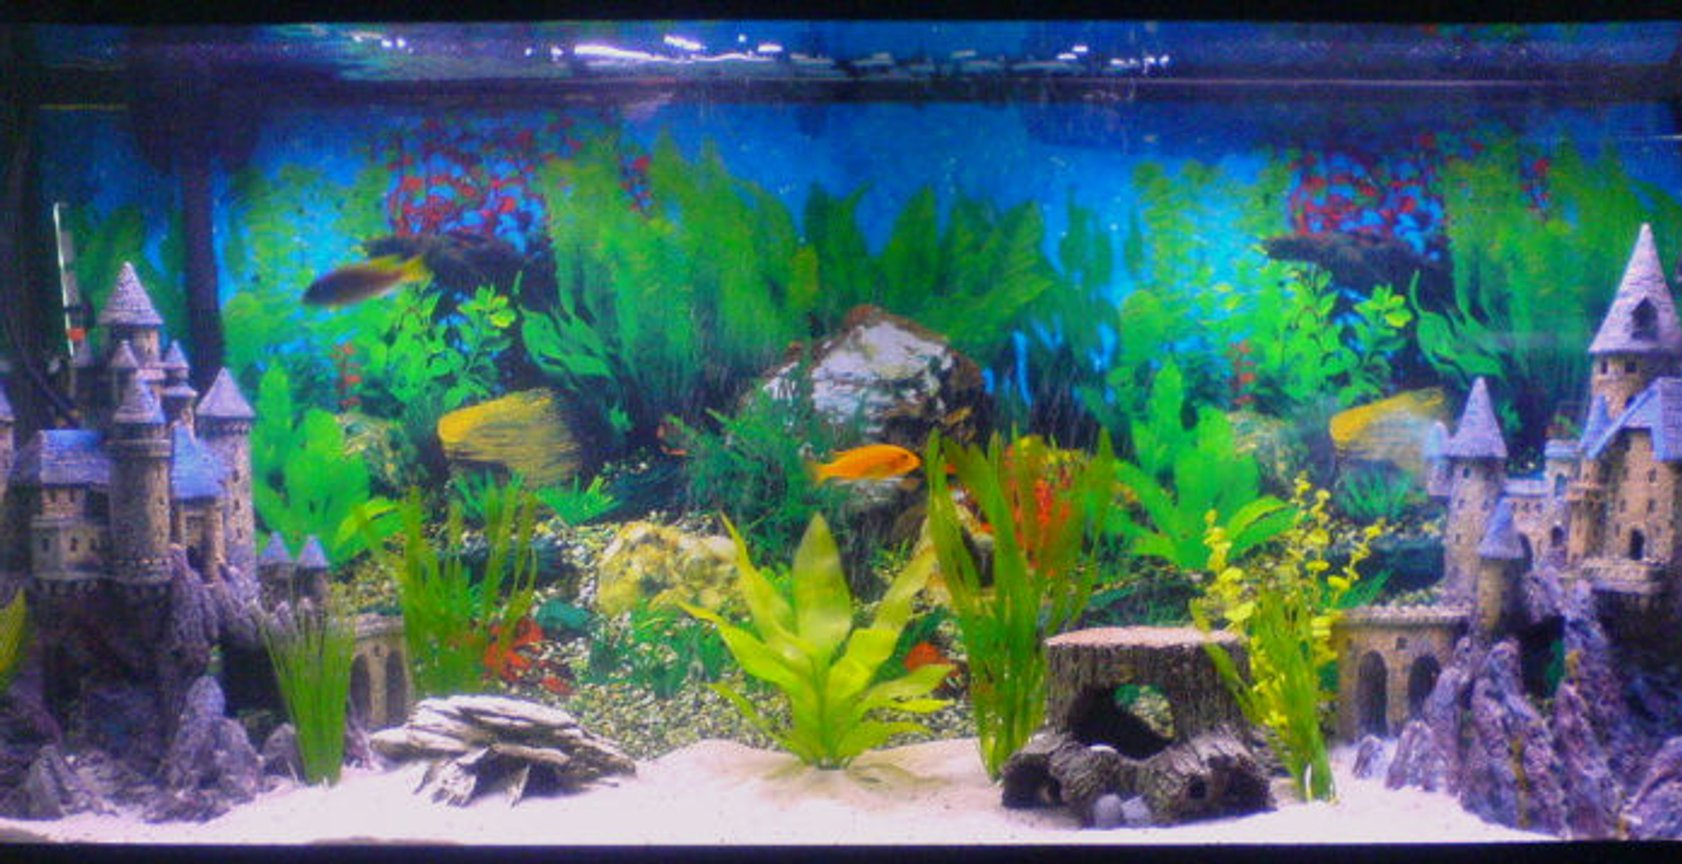 55 gallons freshwater fish tank (mostly fish and non-living decorations) - My First tank Ever Trials and Errors